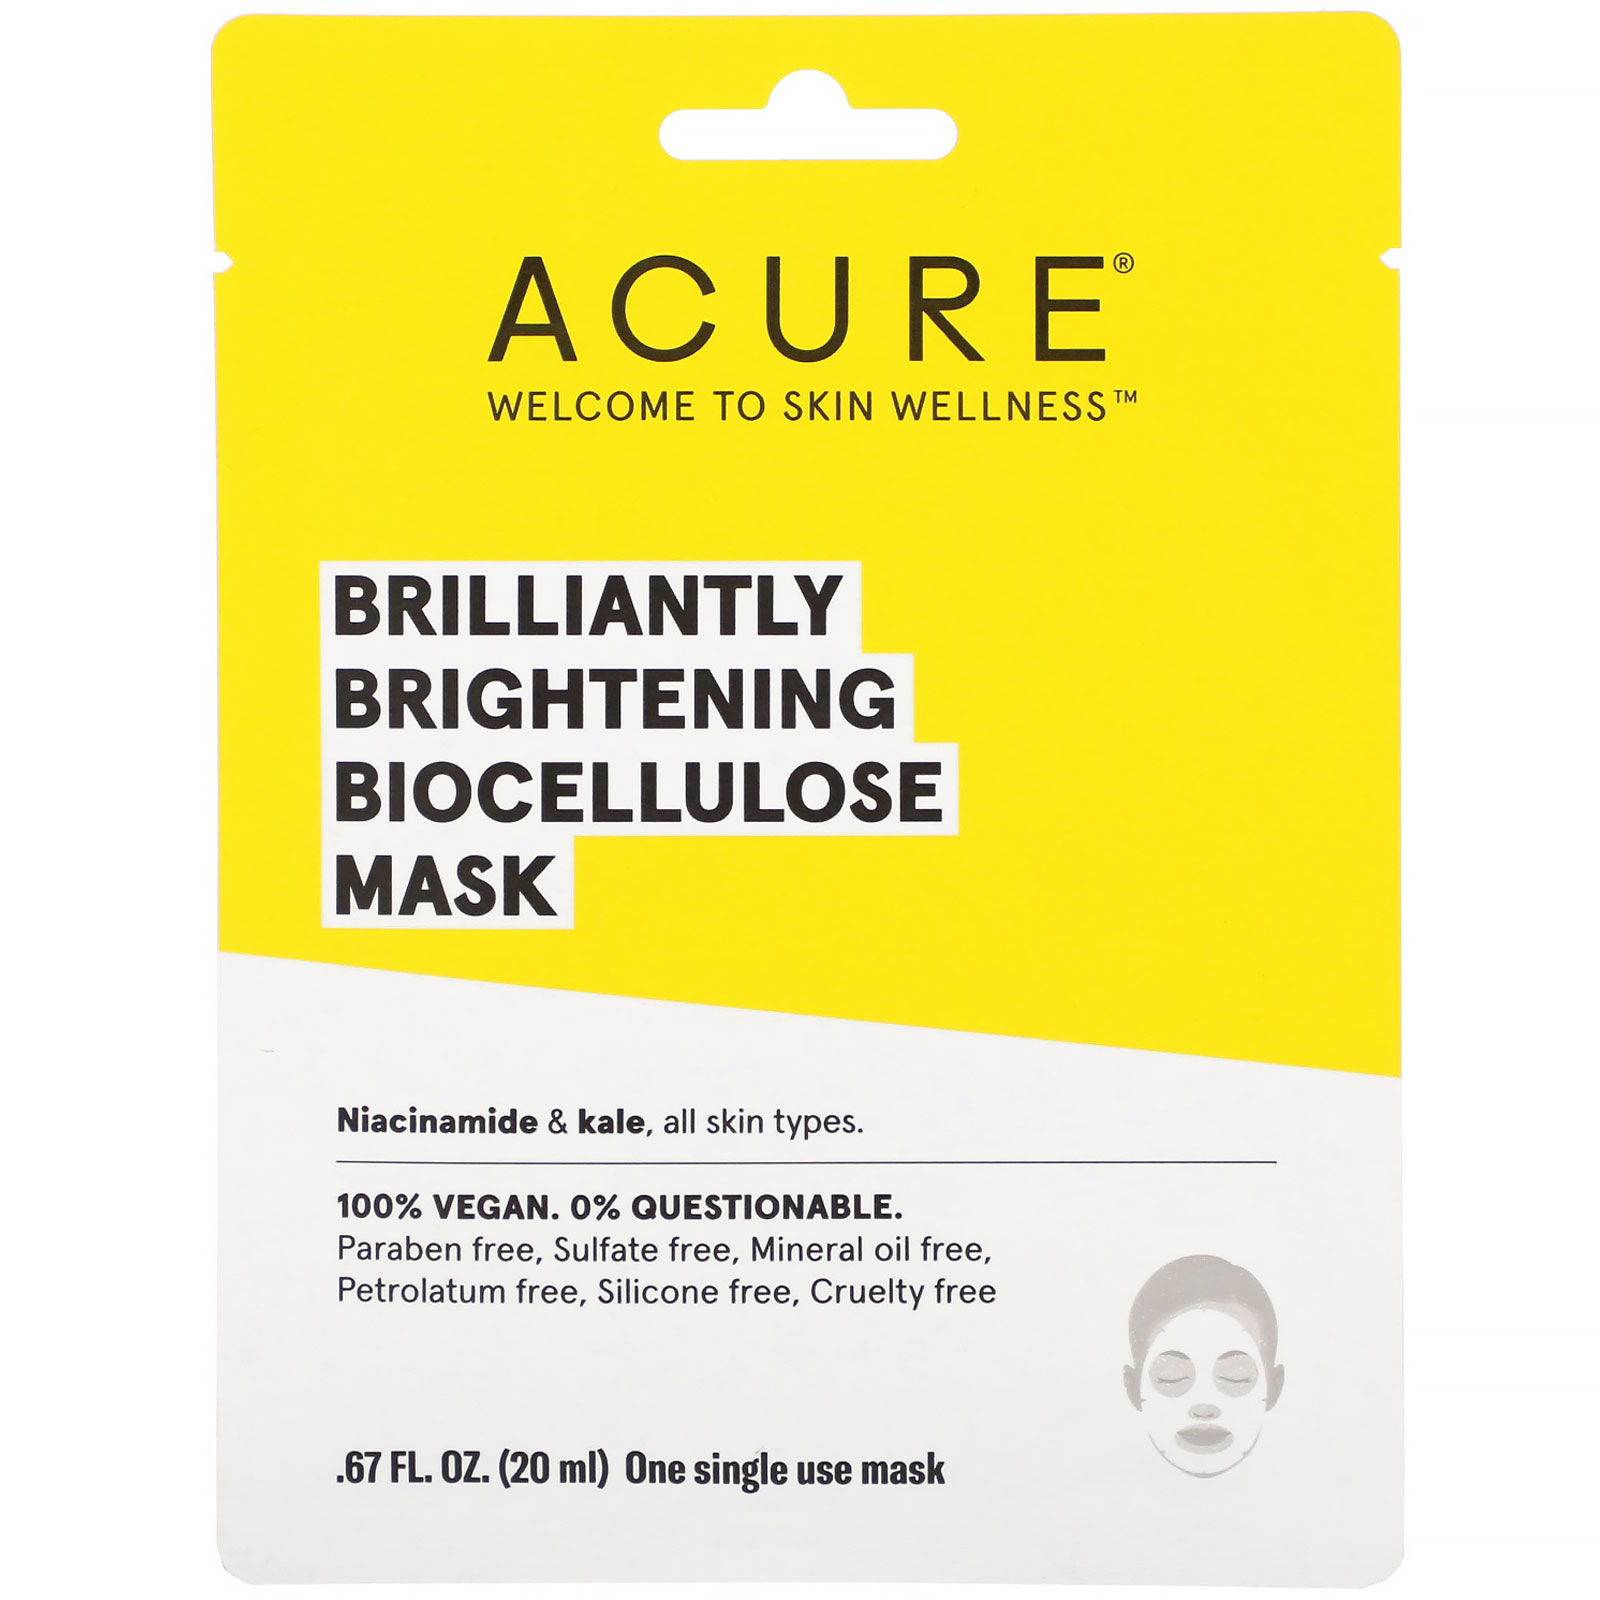 Acure, Brilliantly Brightening, Biocellulose Mask, 1